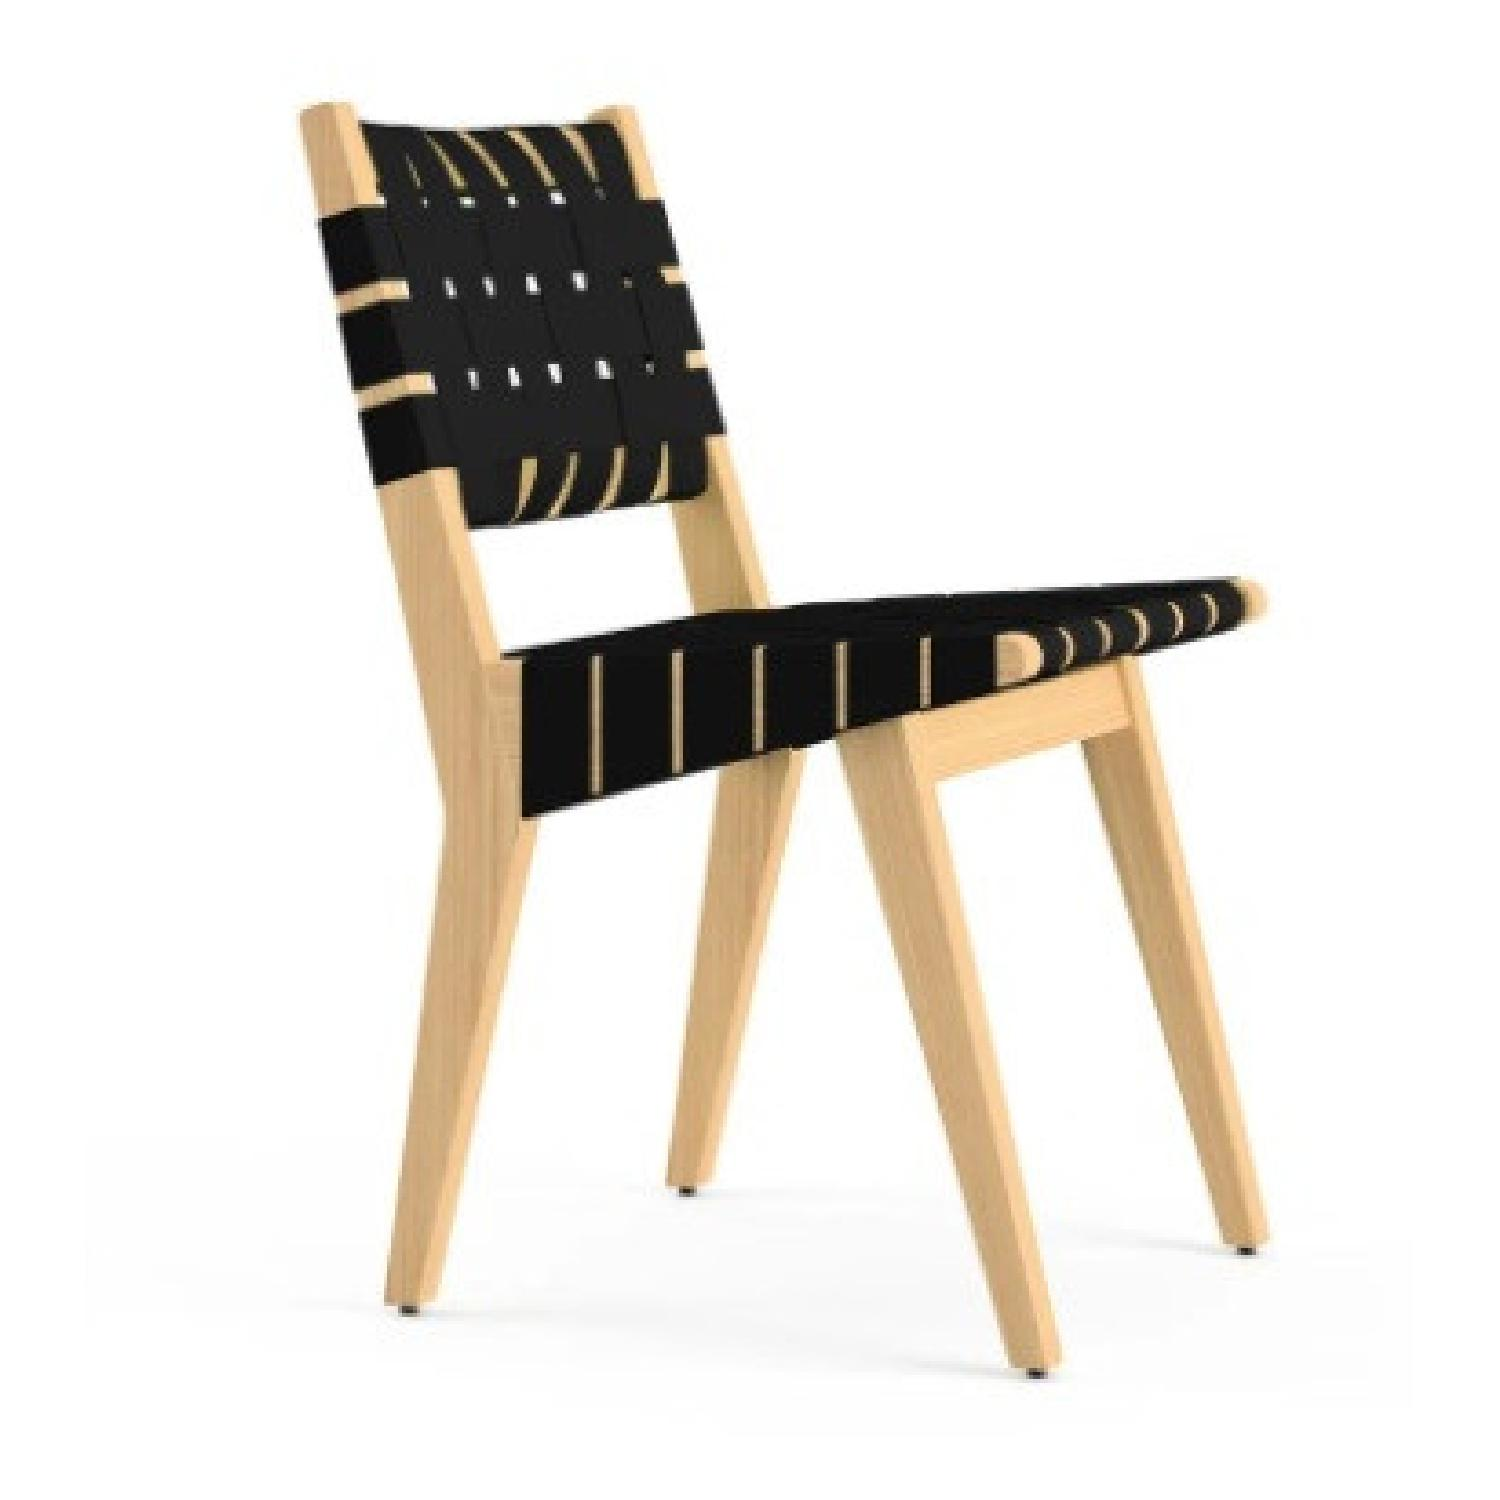 Knoll Vintage Jens Risom Chairs - image-6